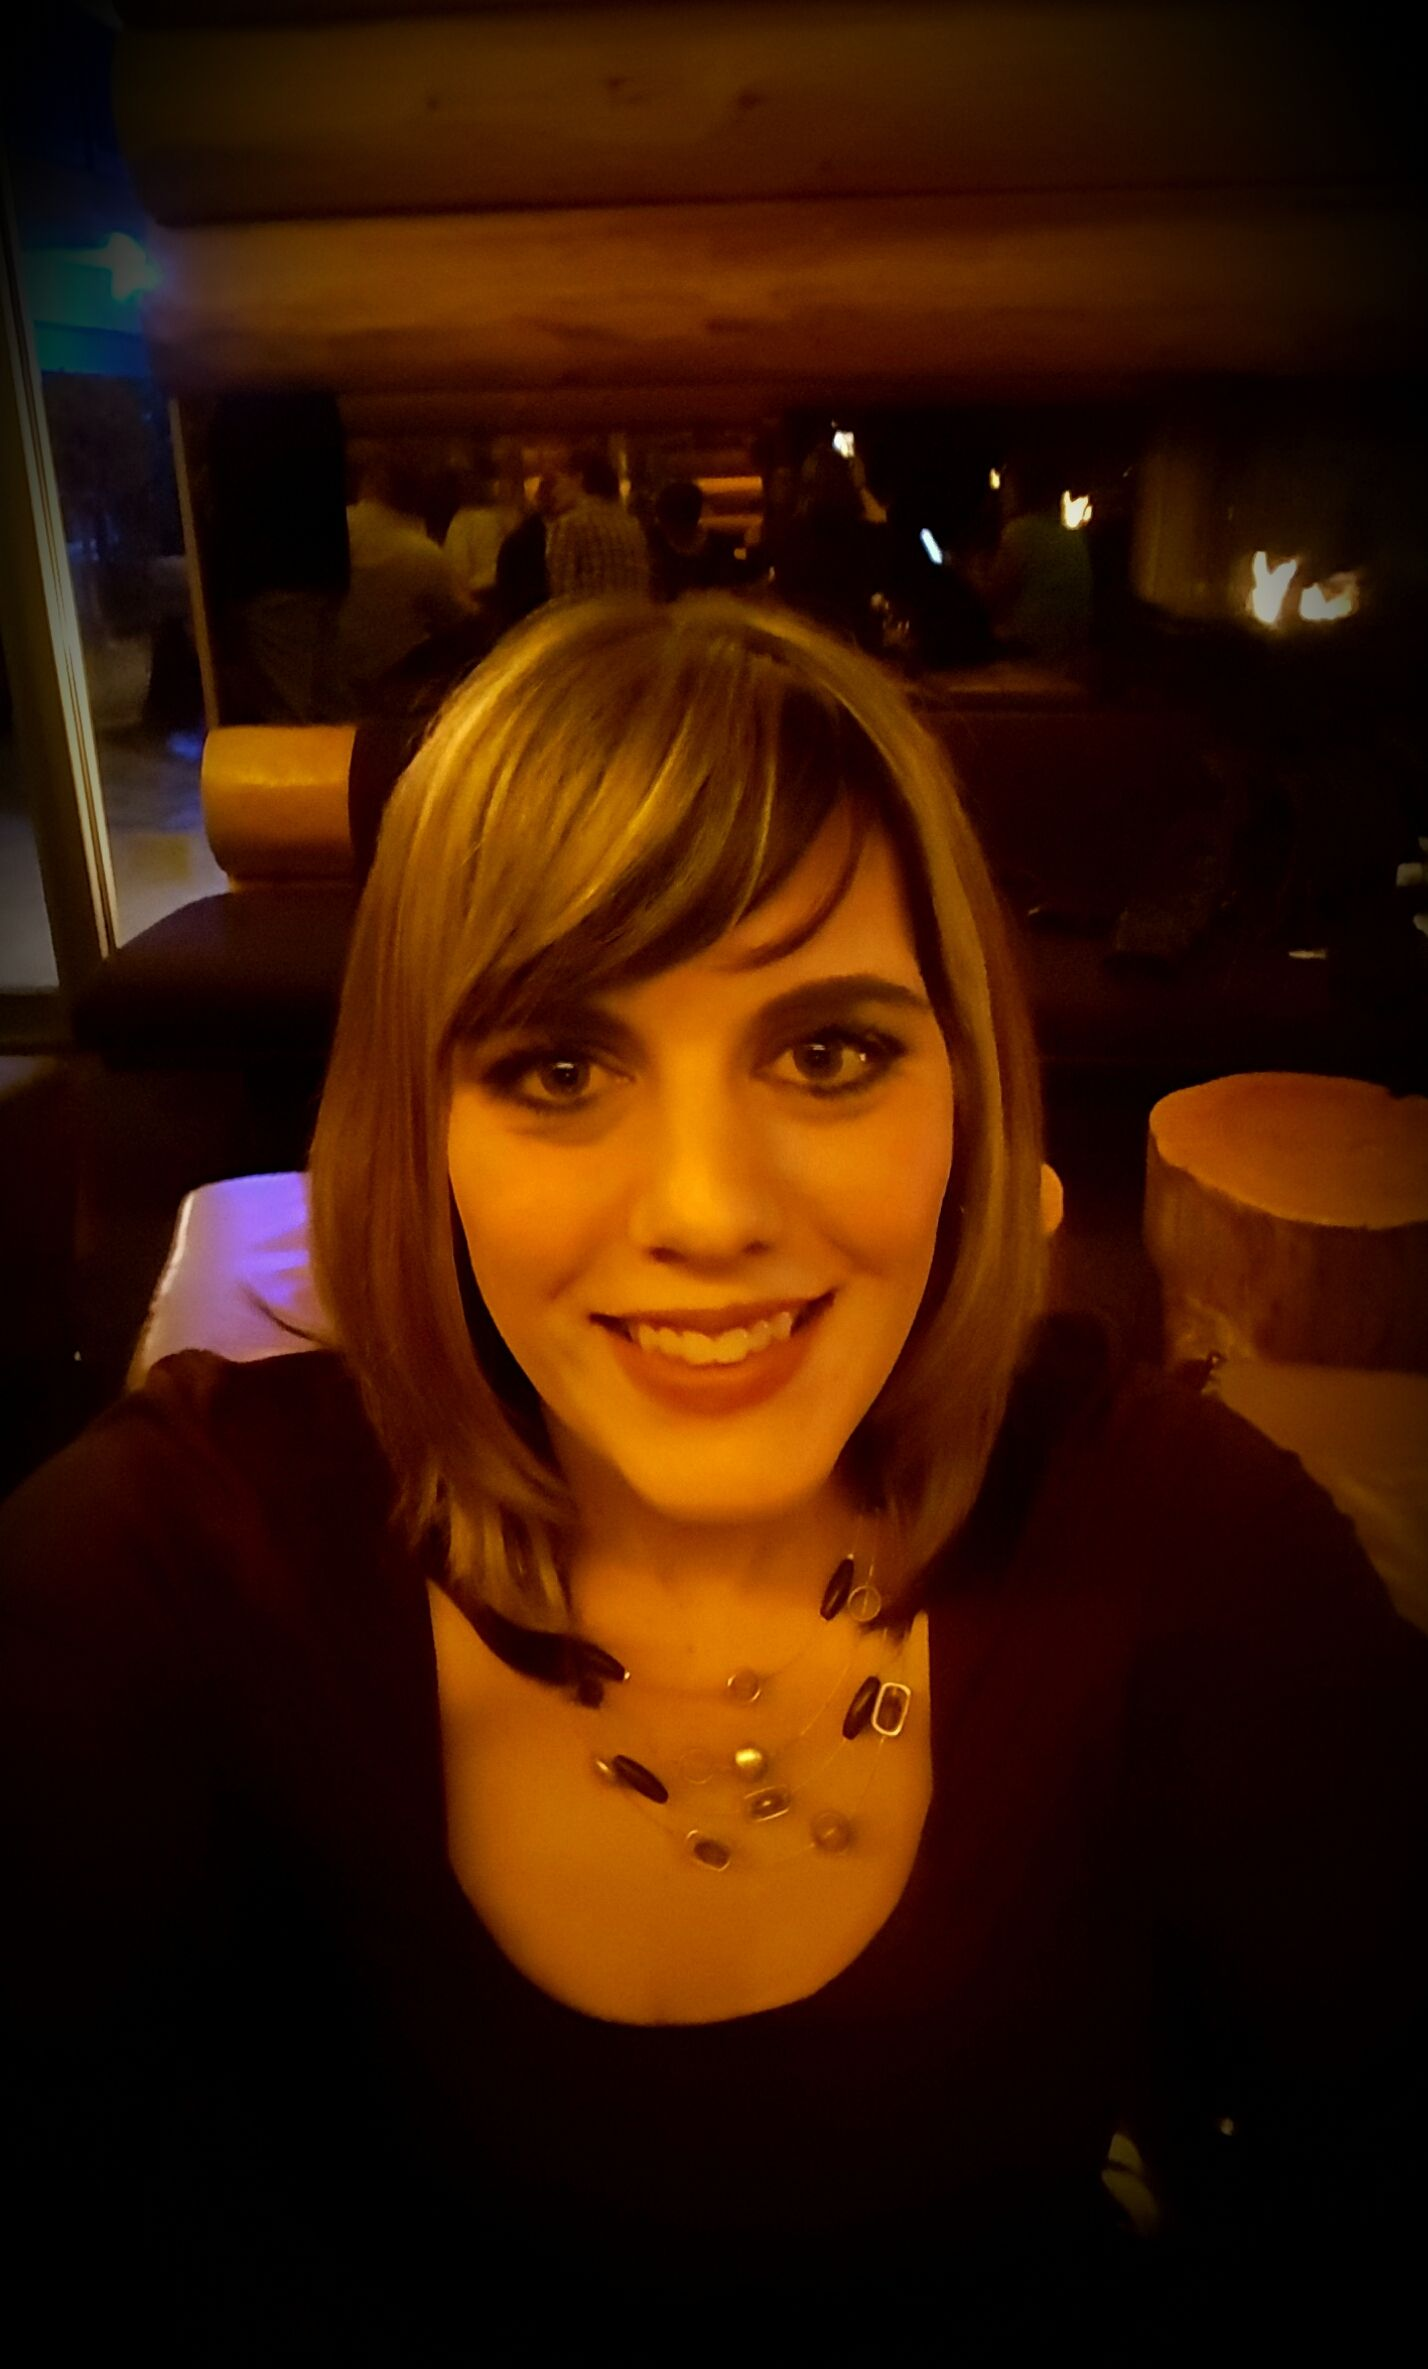 the dalles single lesbian women Lesbian women seeking women in the dalles - 100% free: welcome to datehookupcom we're 100% free for everything, meet single lesbians in the dalles.